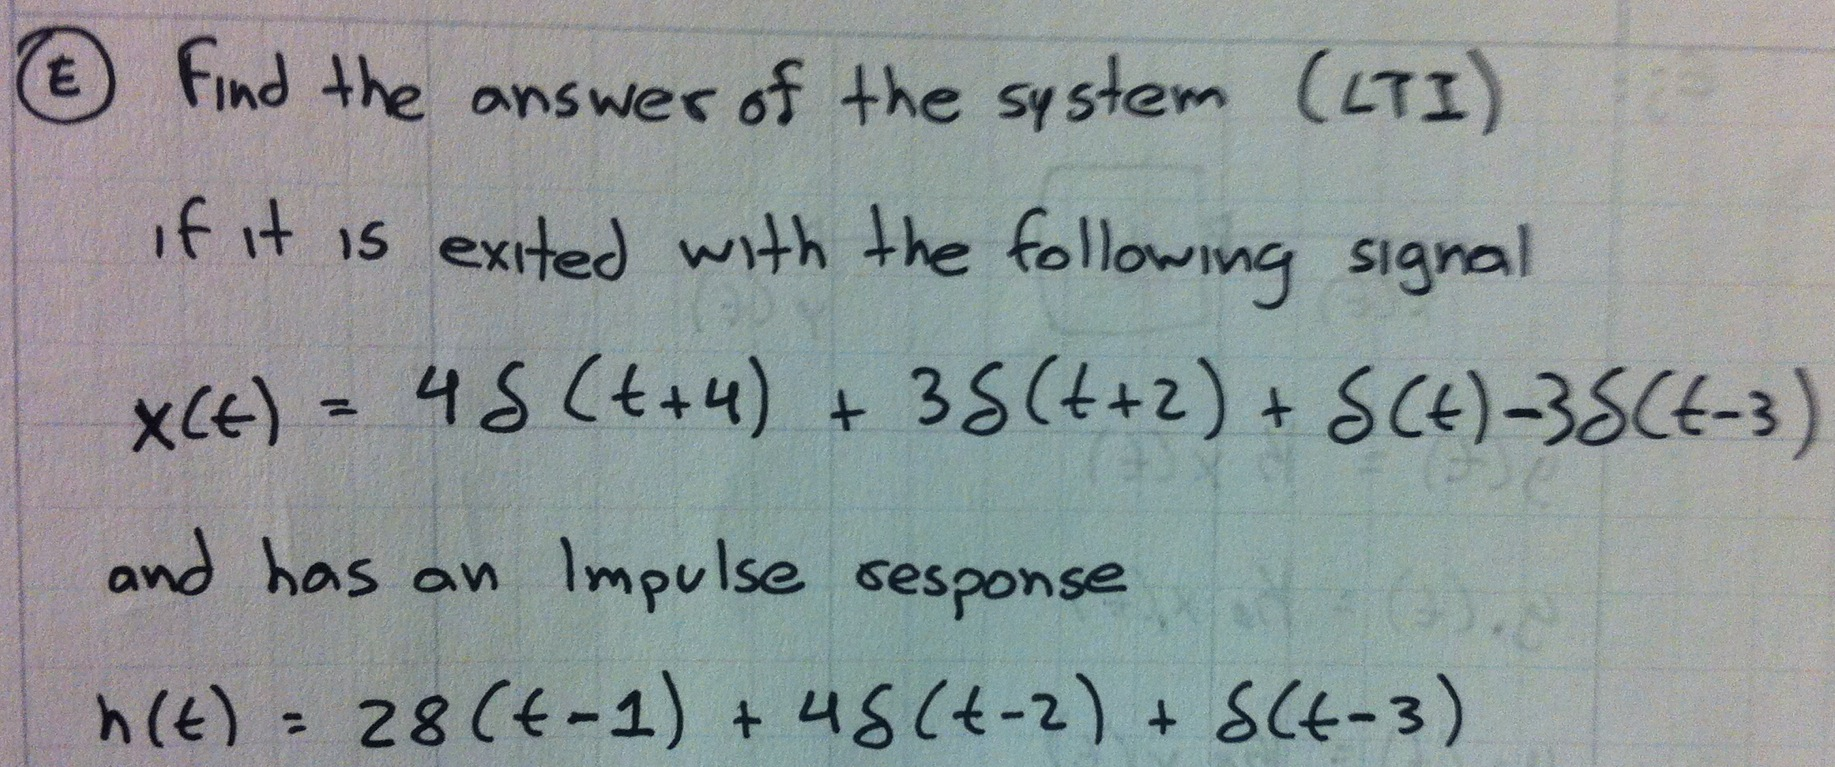 Find the answer of the system (LTI) if it is exite